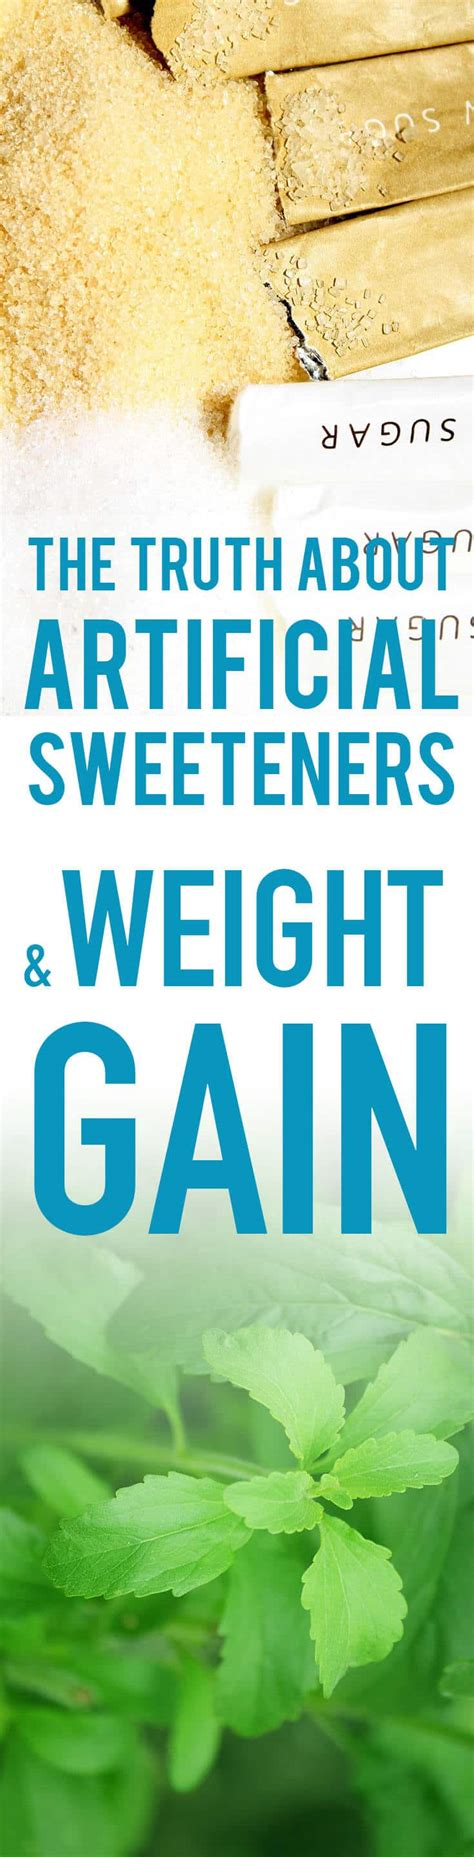 artificial sweeteners and weight gain picture 14